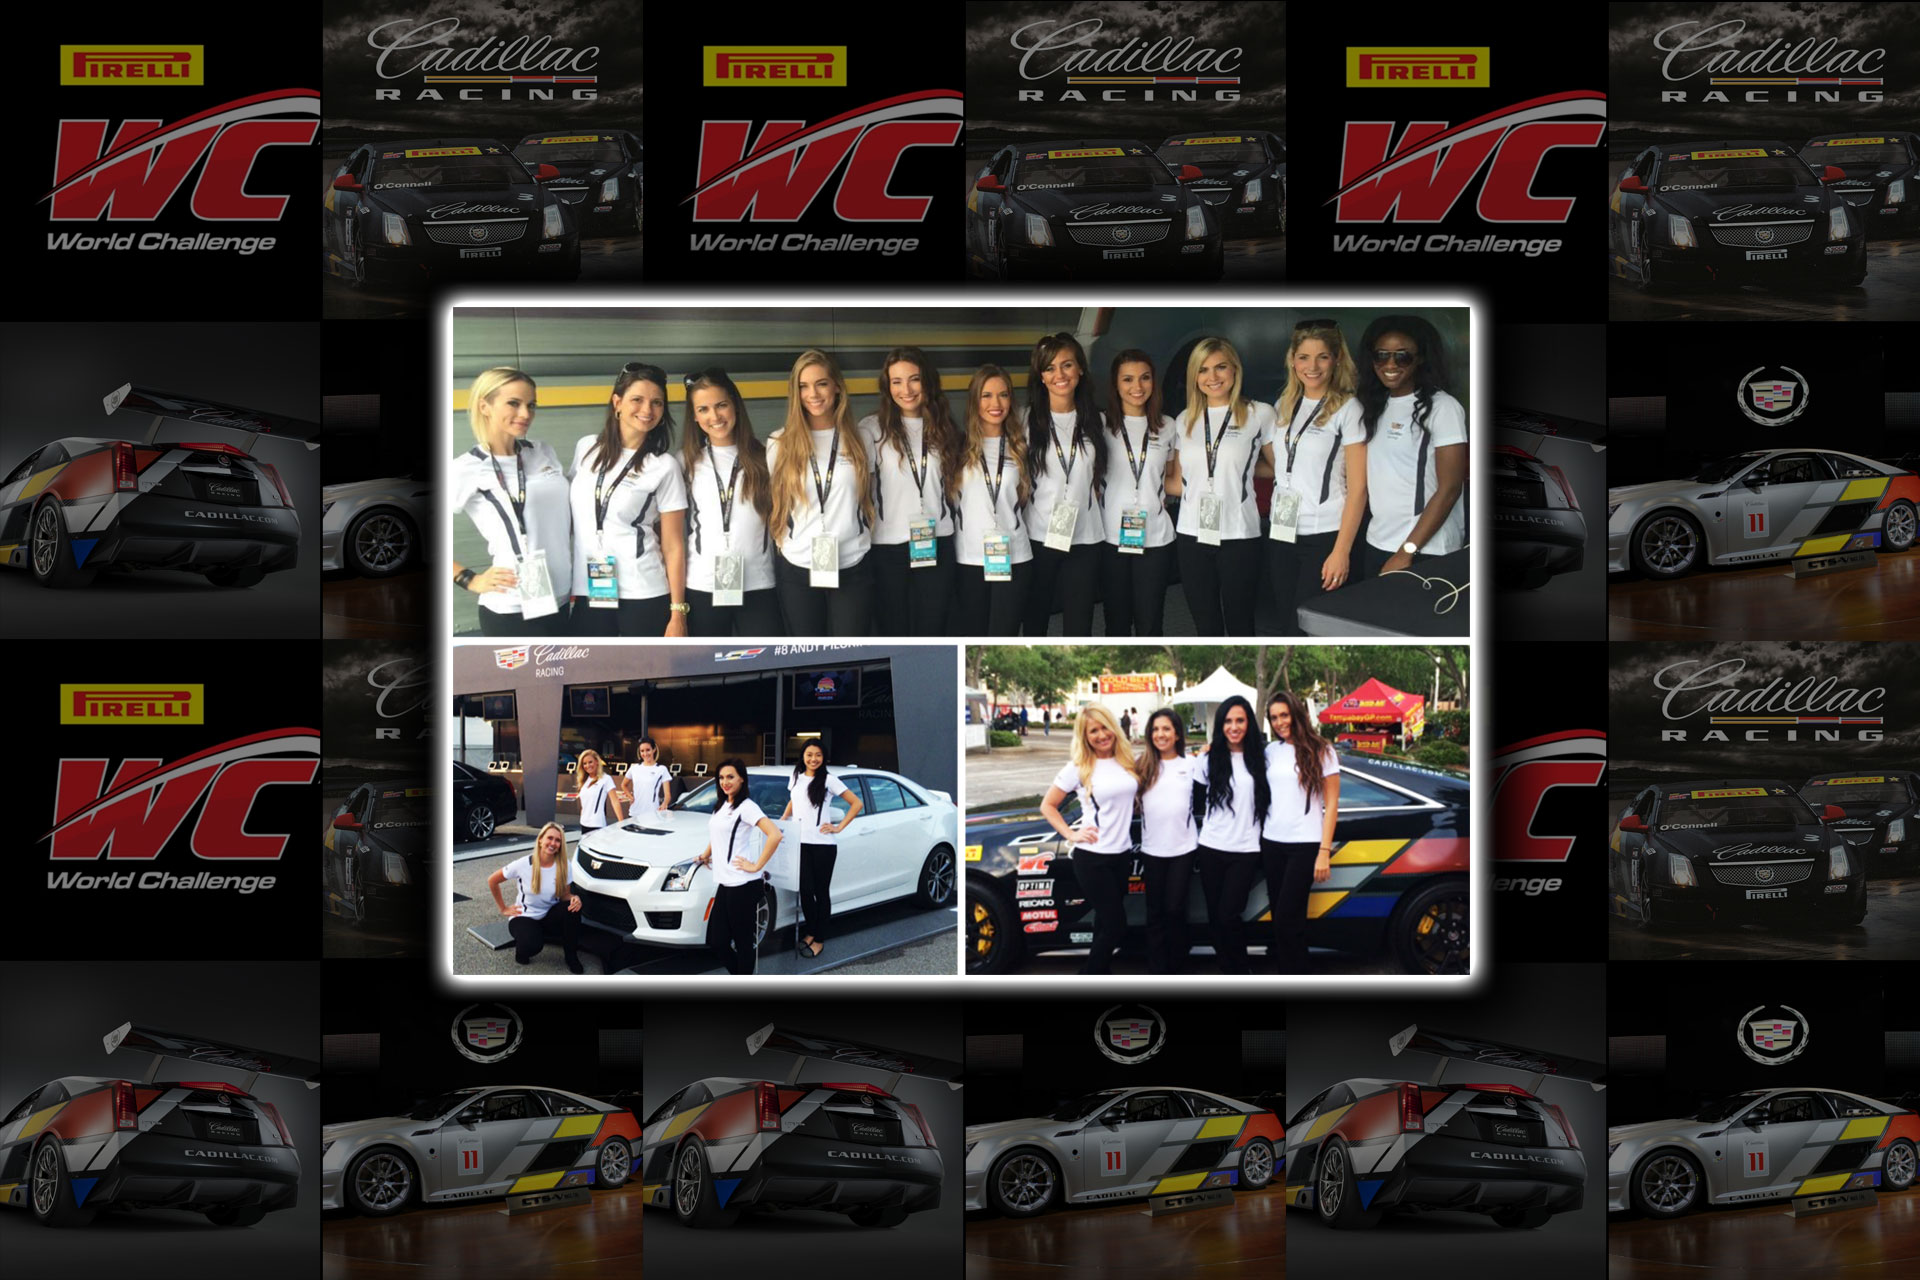 On Tour 24/7 Promotional Models working the 2015 Pirelli World Challenge in the United Stated and Canada